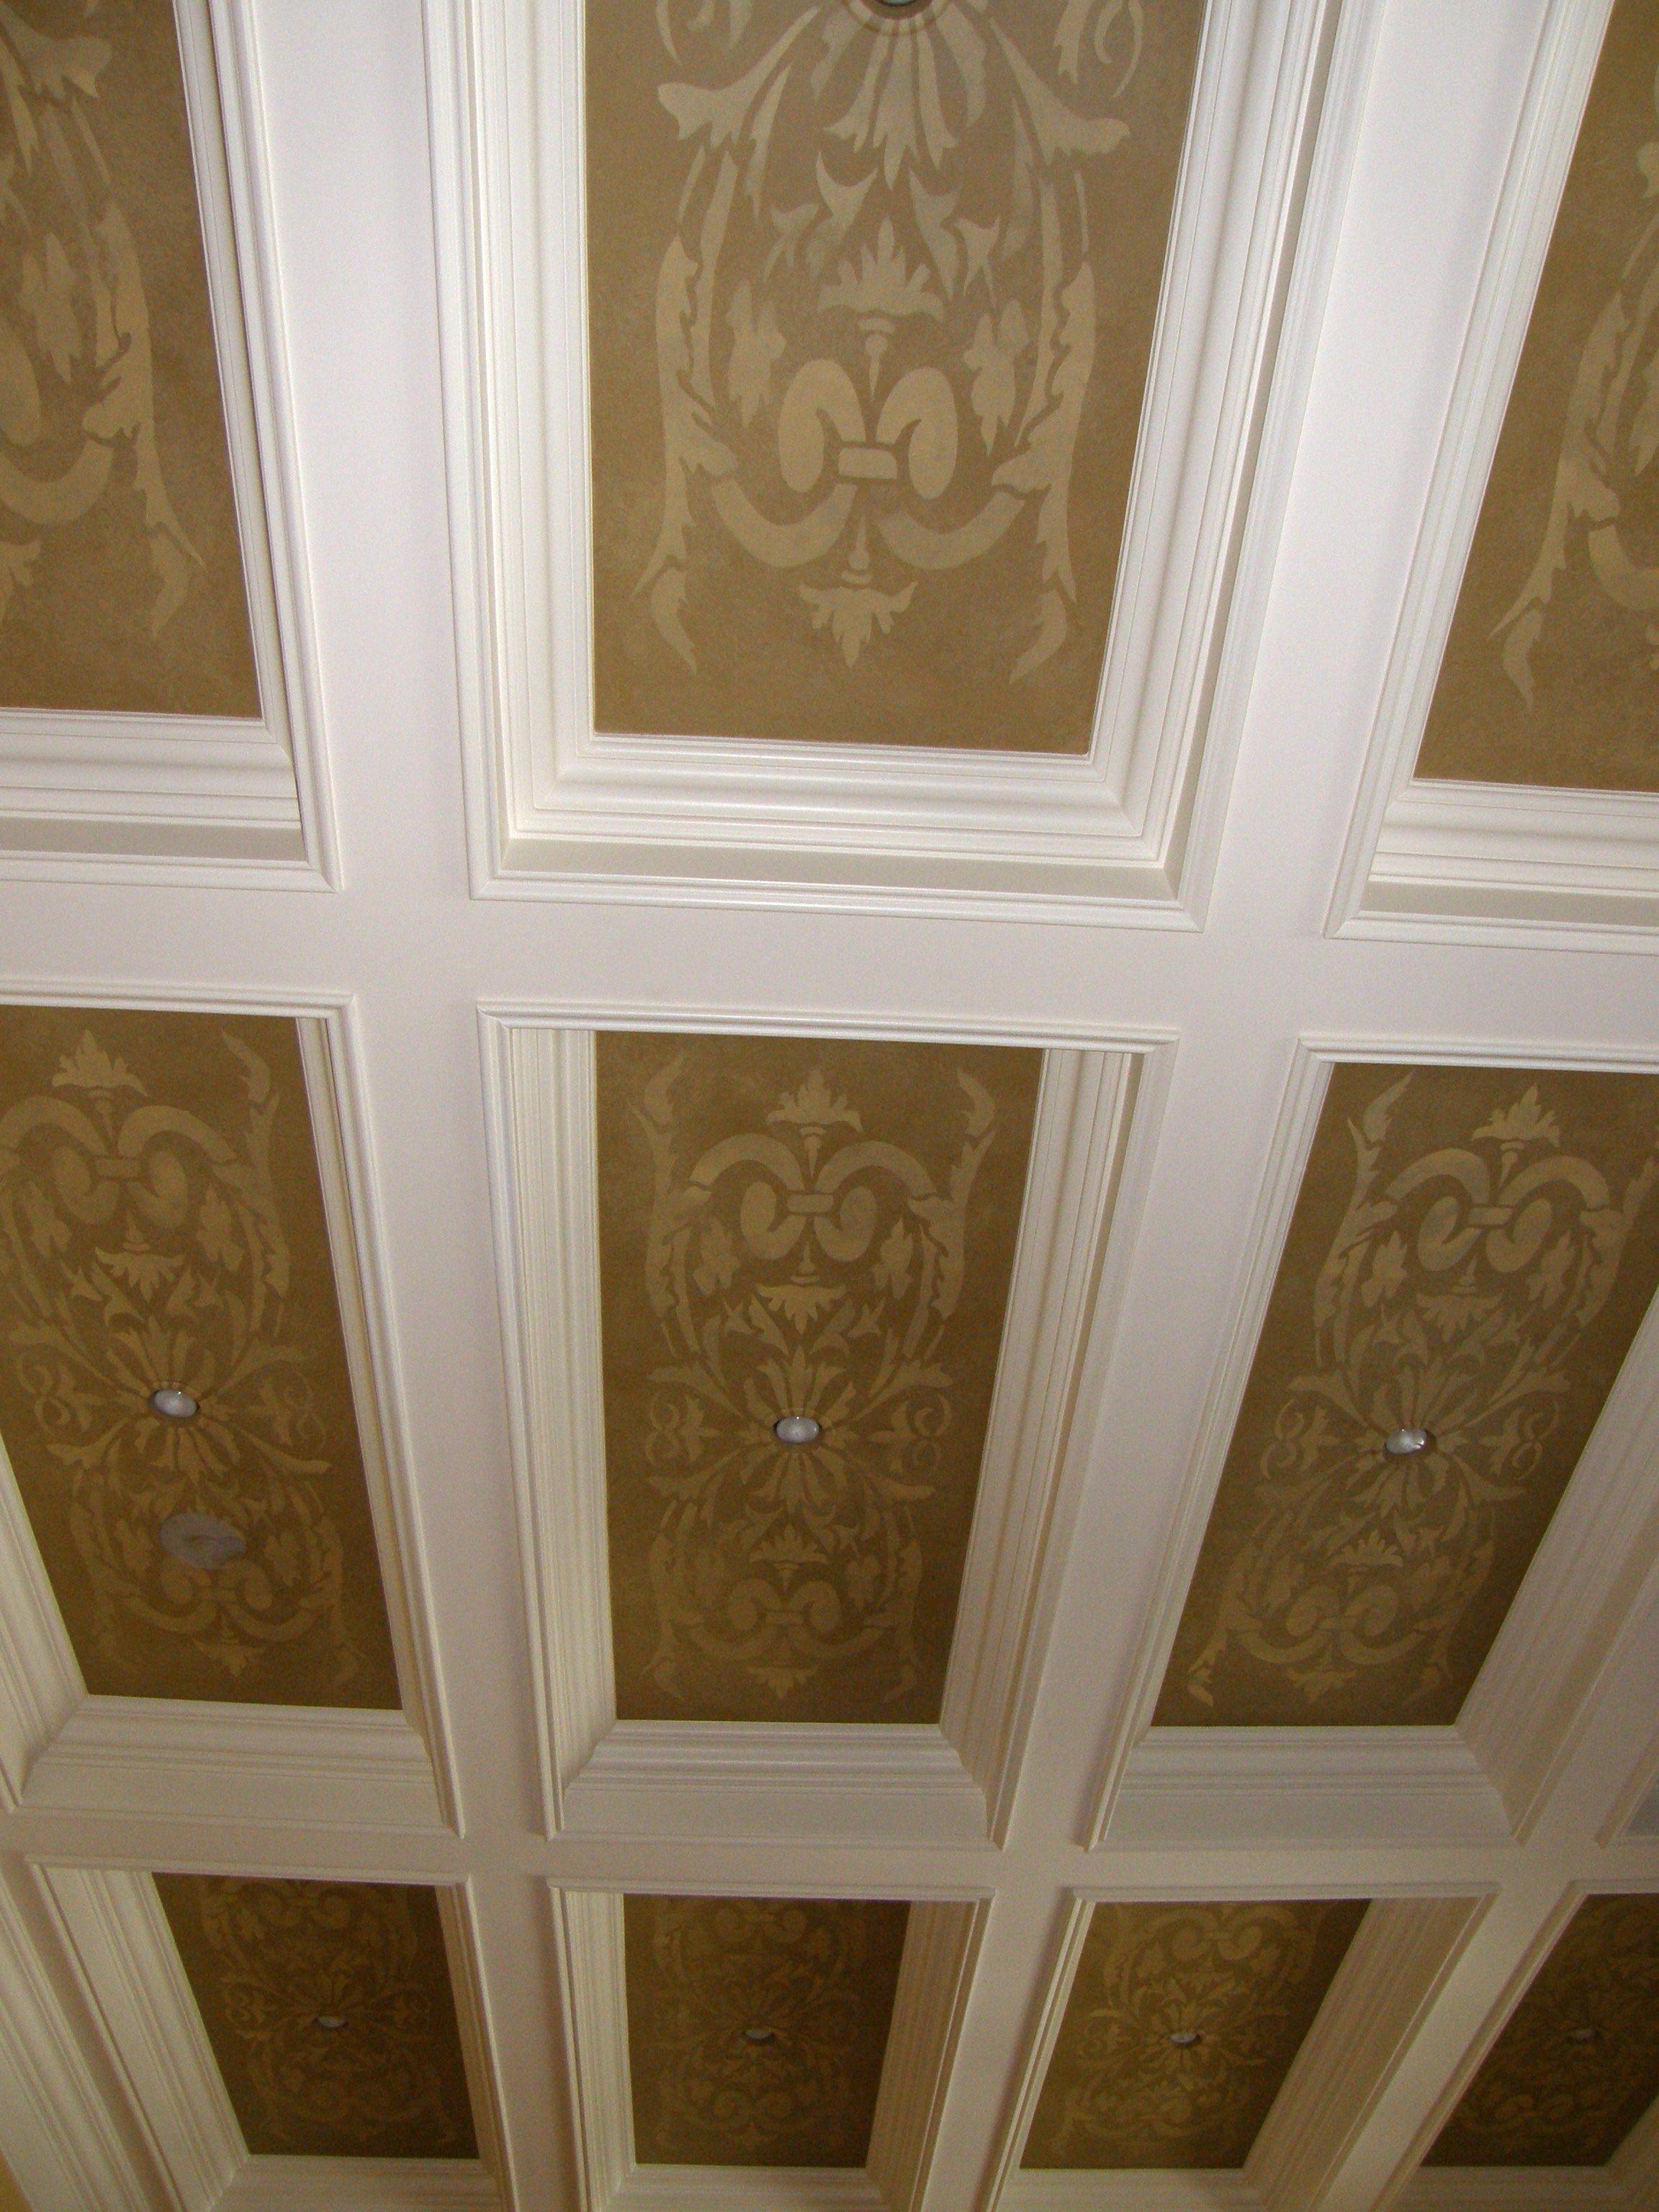 Hand Stenciled Ceiling Wooden Beams Decor Interior